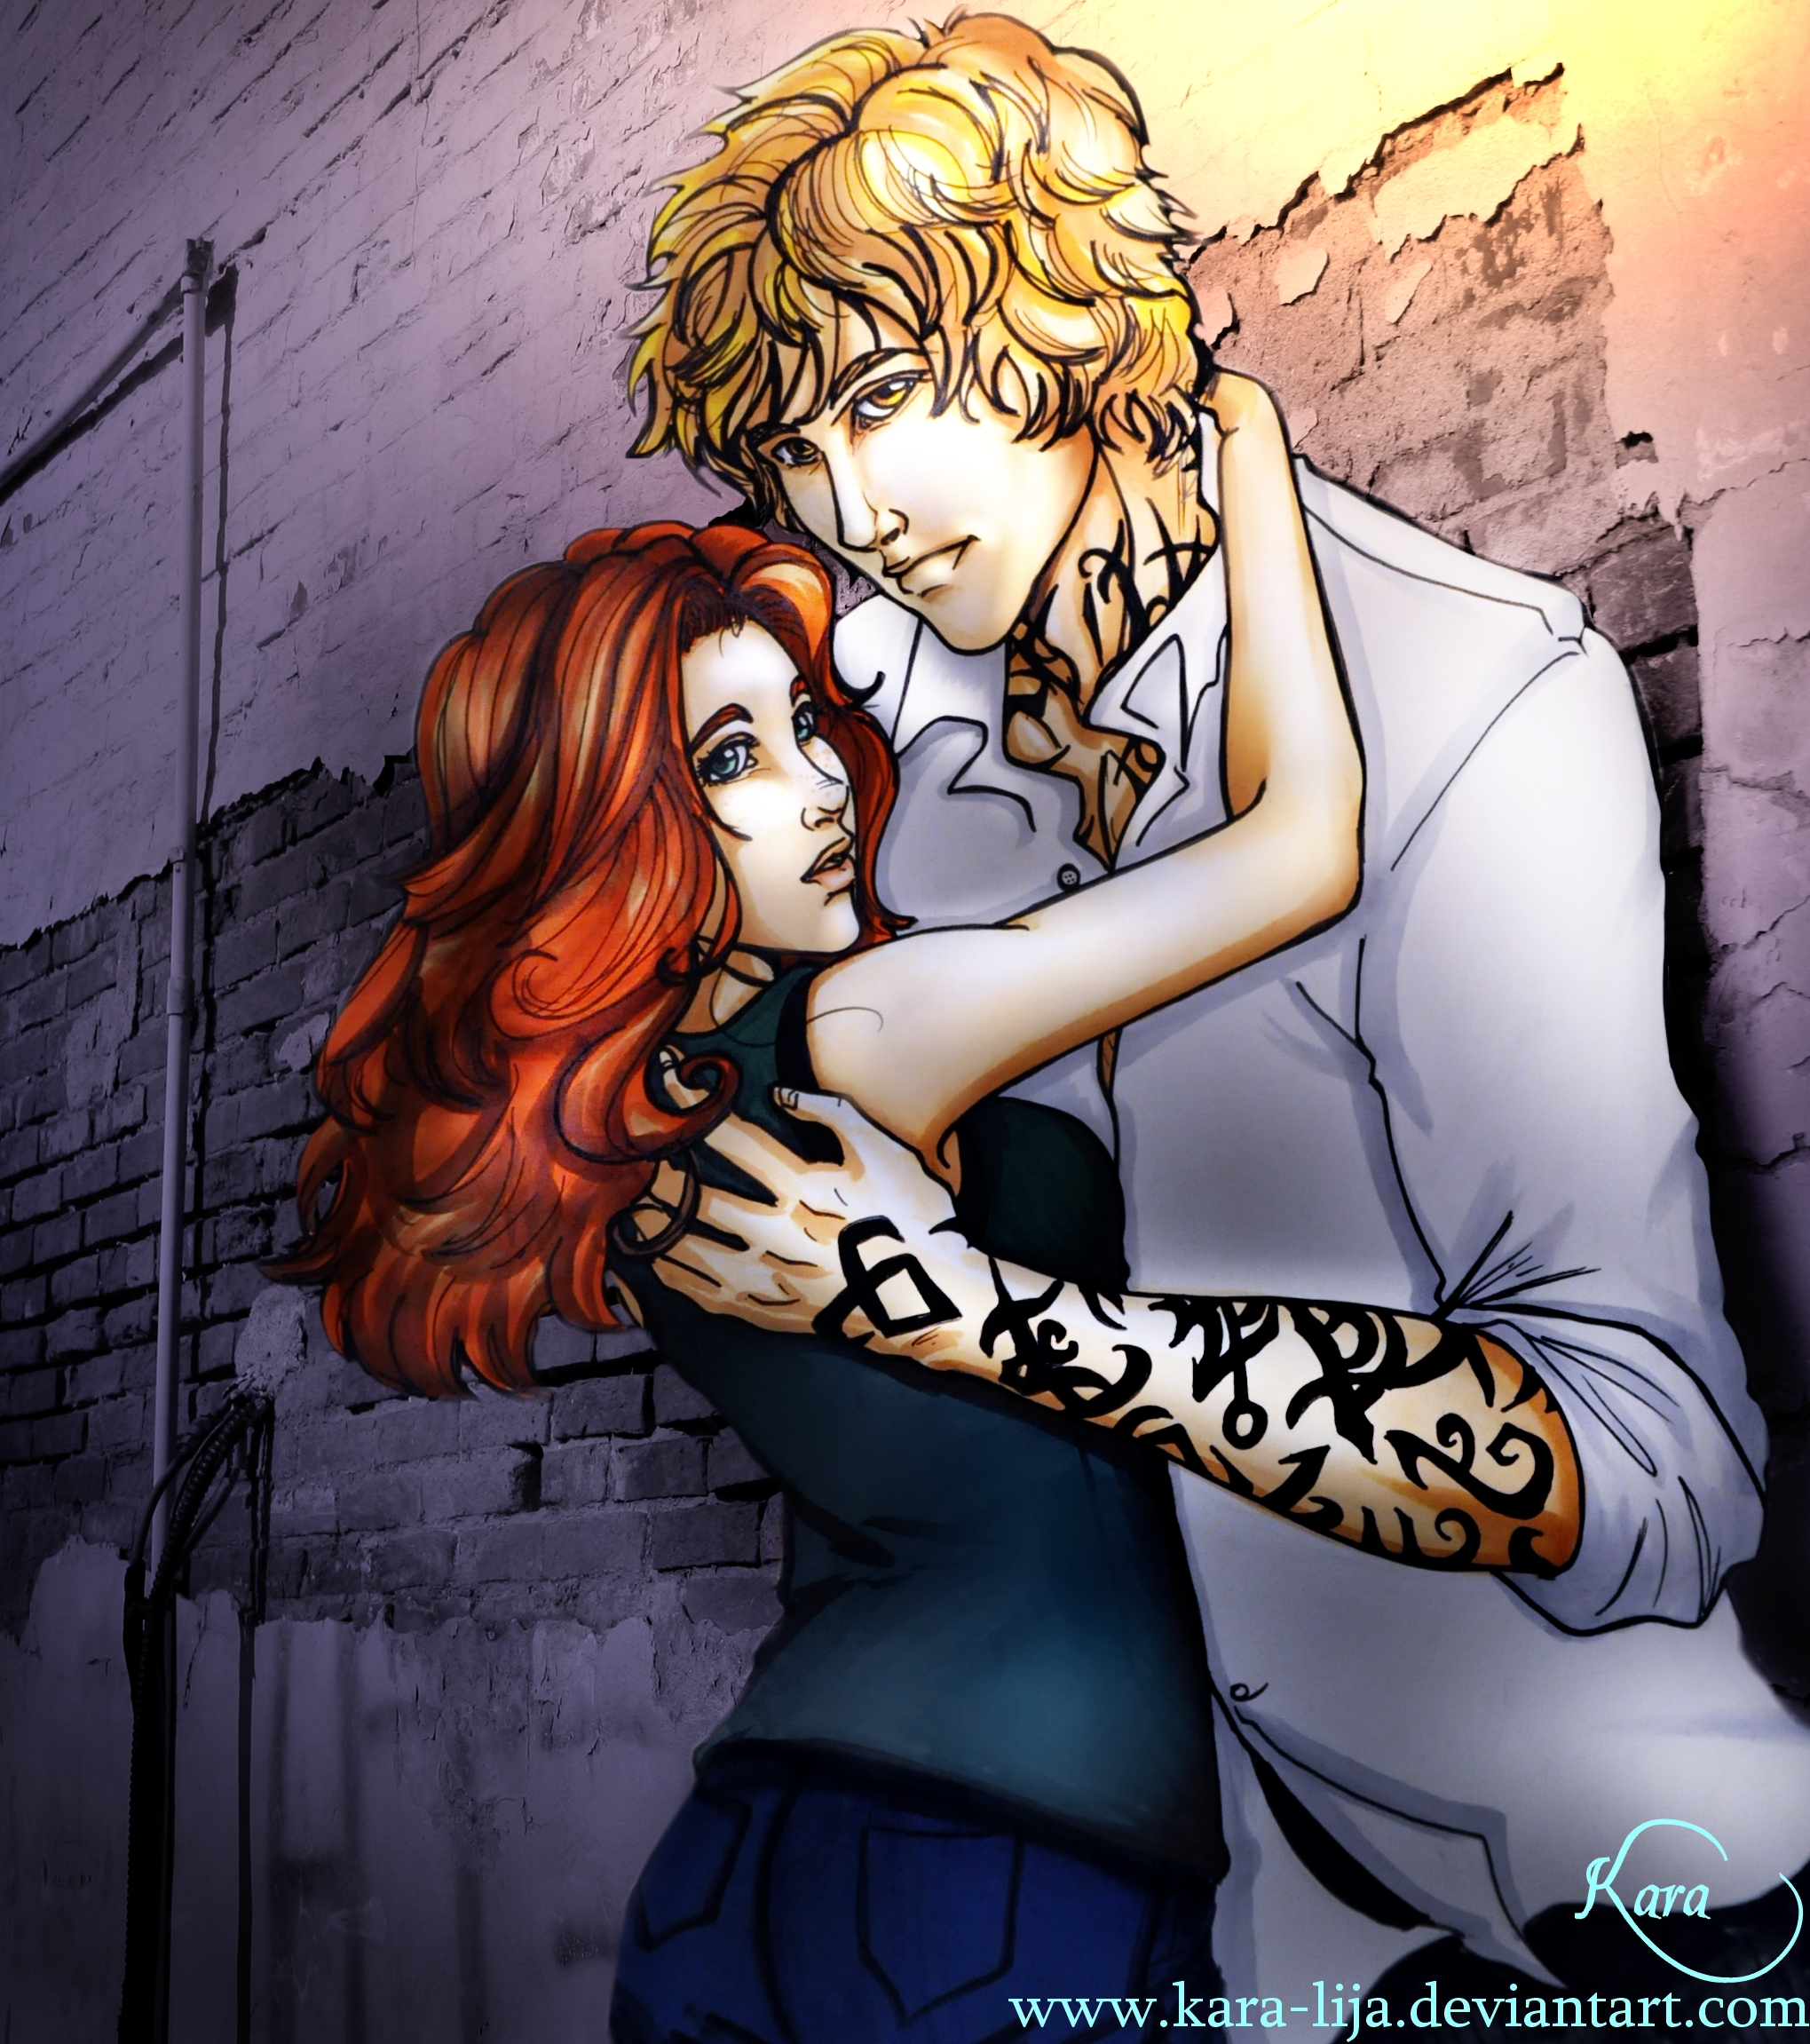 Jace and Clary Finally Have a Fun Day! - The Fandom  |Jace And Clary Fan Art Tumblr